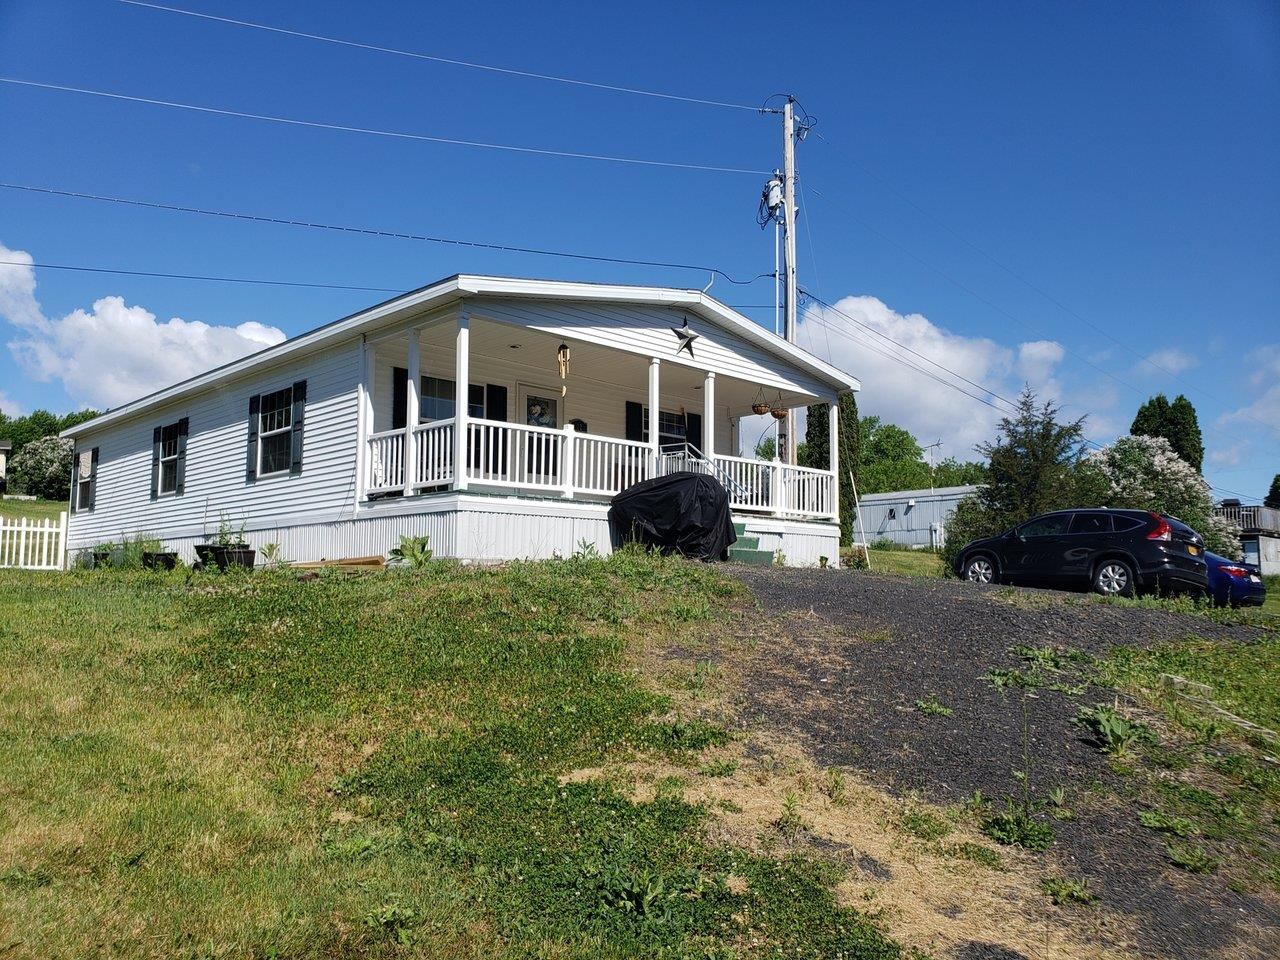 Sold property in Grand Isle